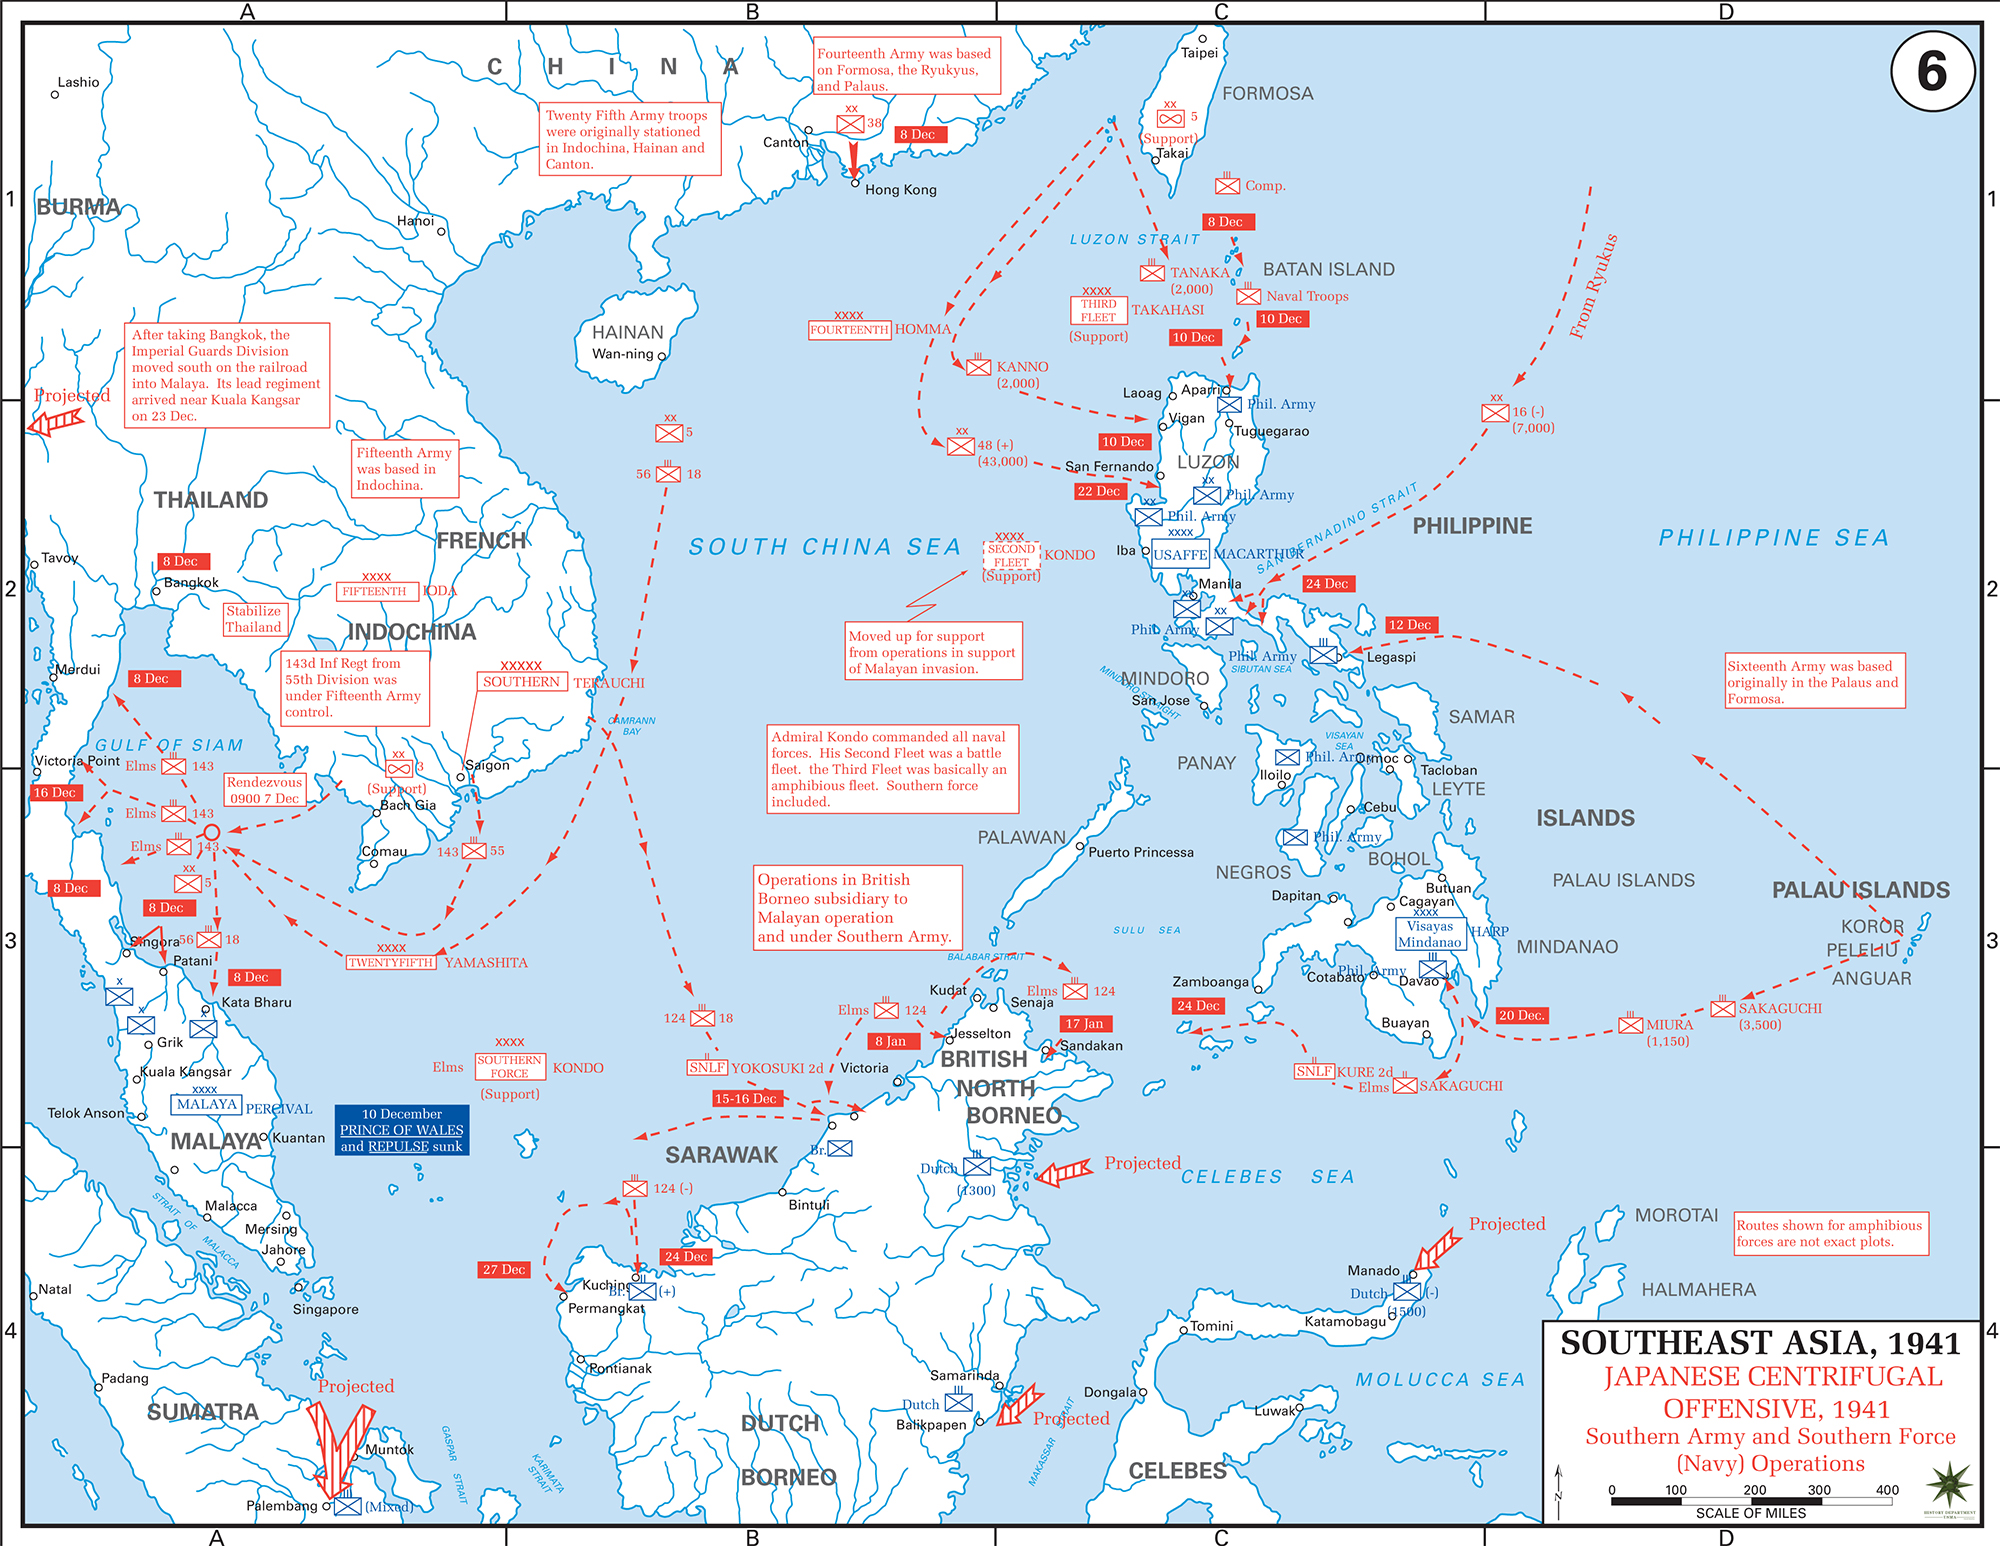 Map Of World War II: Southeast Asia. Japanese Centrifugal Offensive,  December 1941.